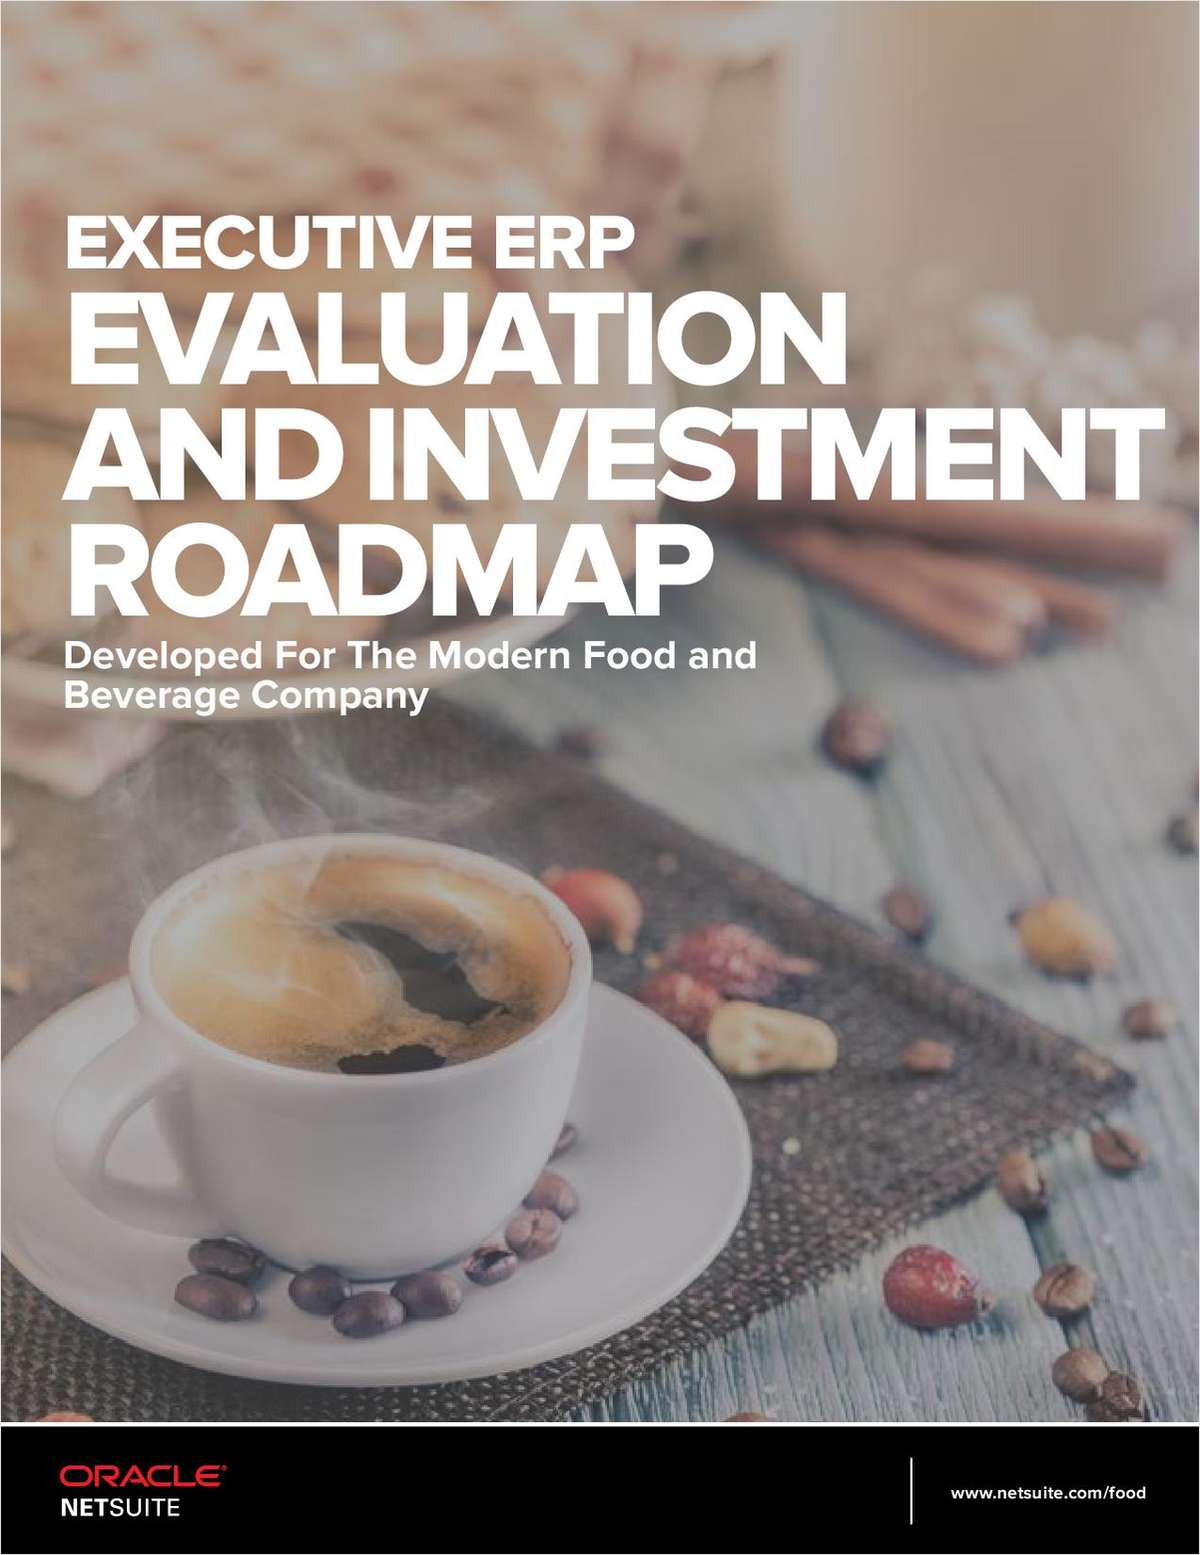 Executive ERP Evaluation and Investment Roadmap Developed for the Modern Food and Beverage Company